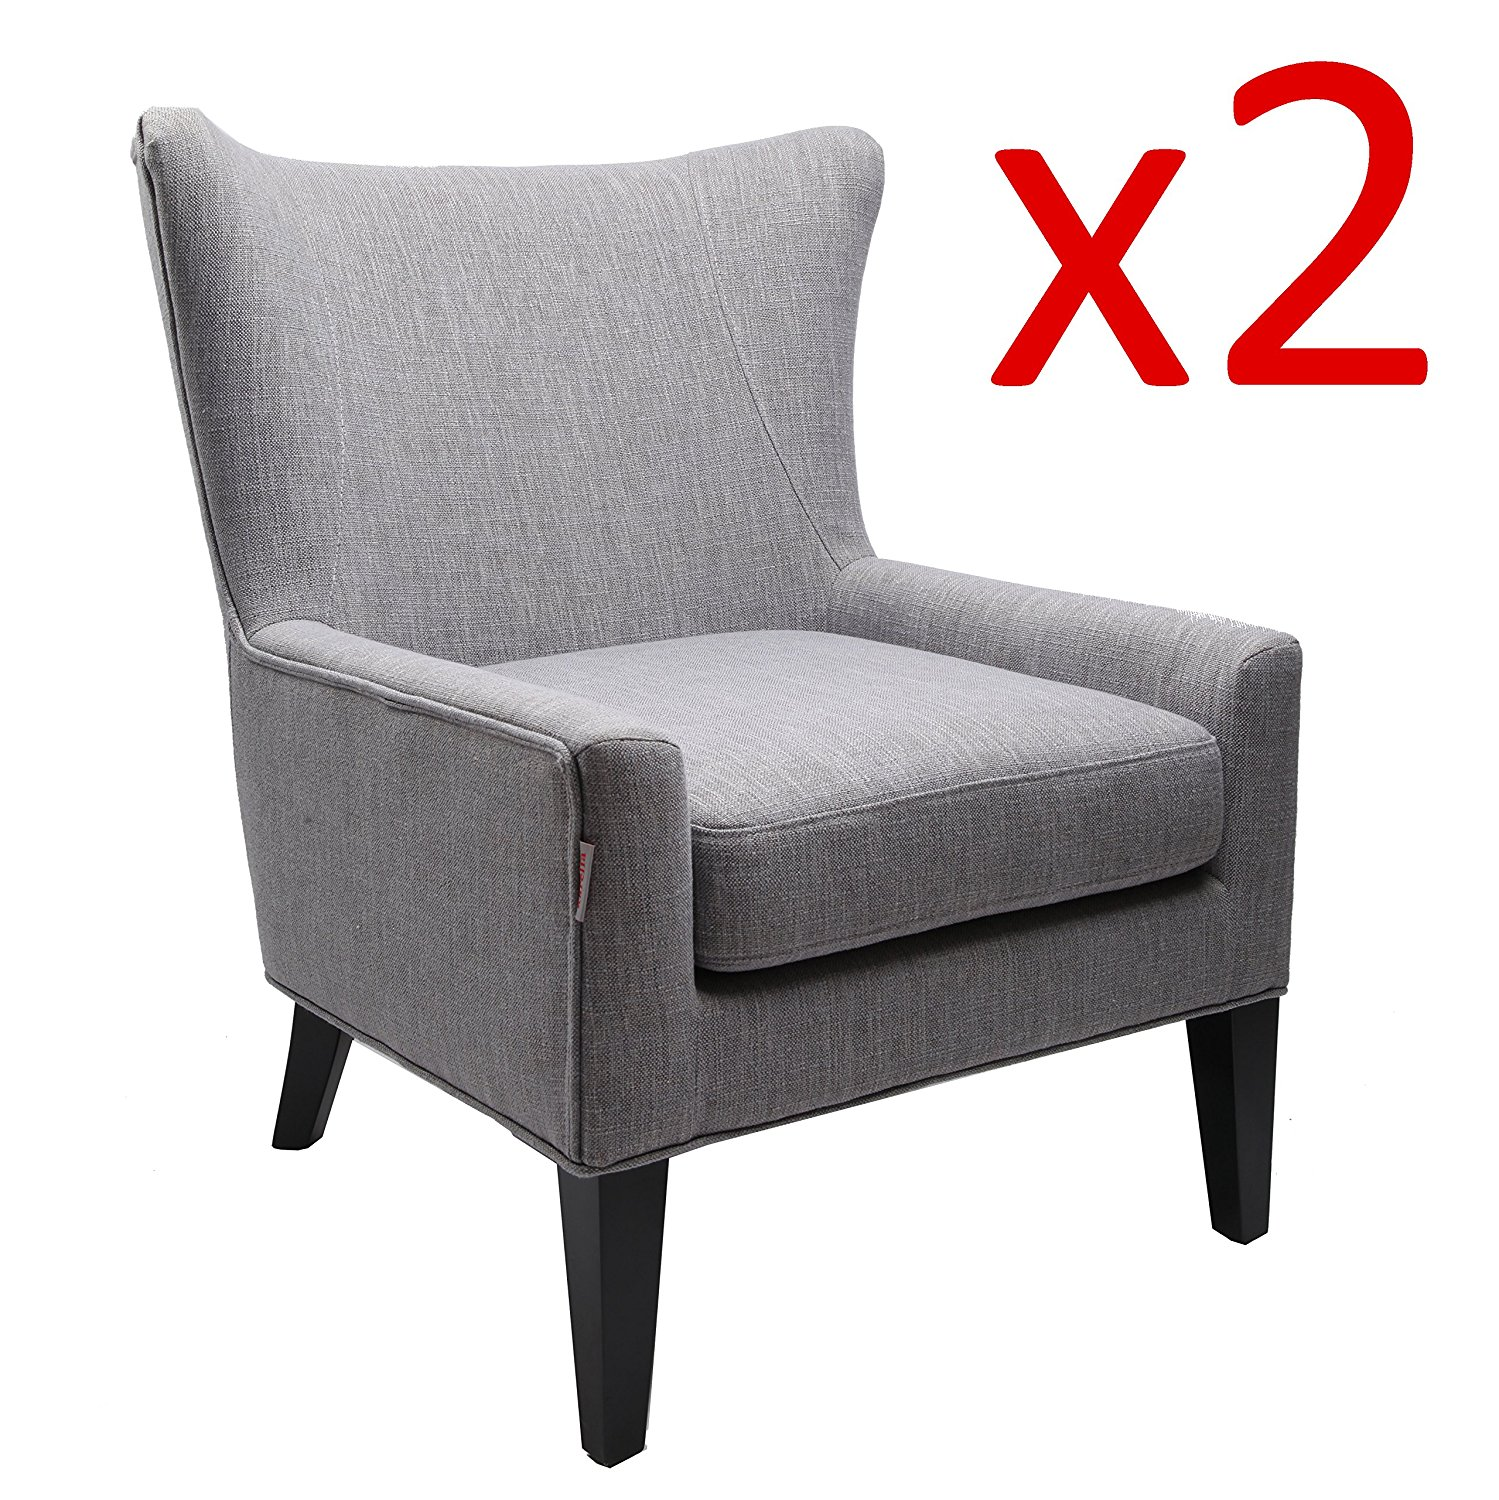 upholstered bedroom chair with arms shaker dining chairs buy finnkarelia tall wingback fabric accent armchair modern club sofa contemporary living room seat